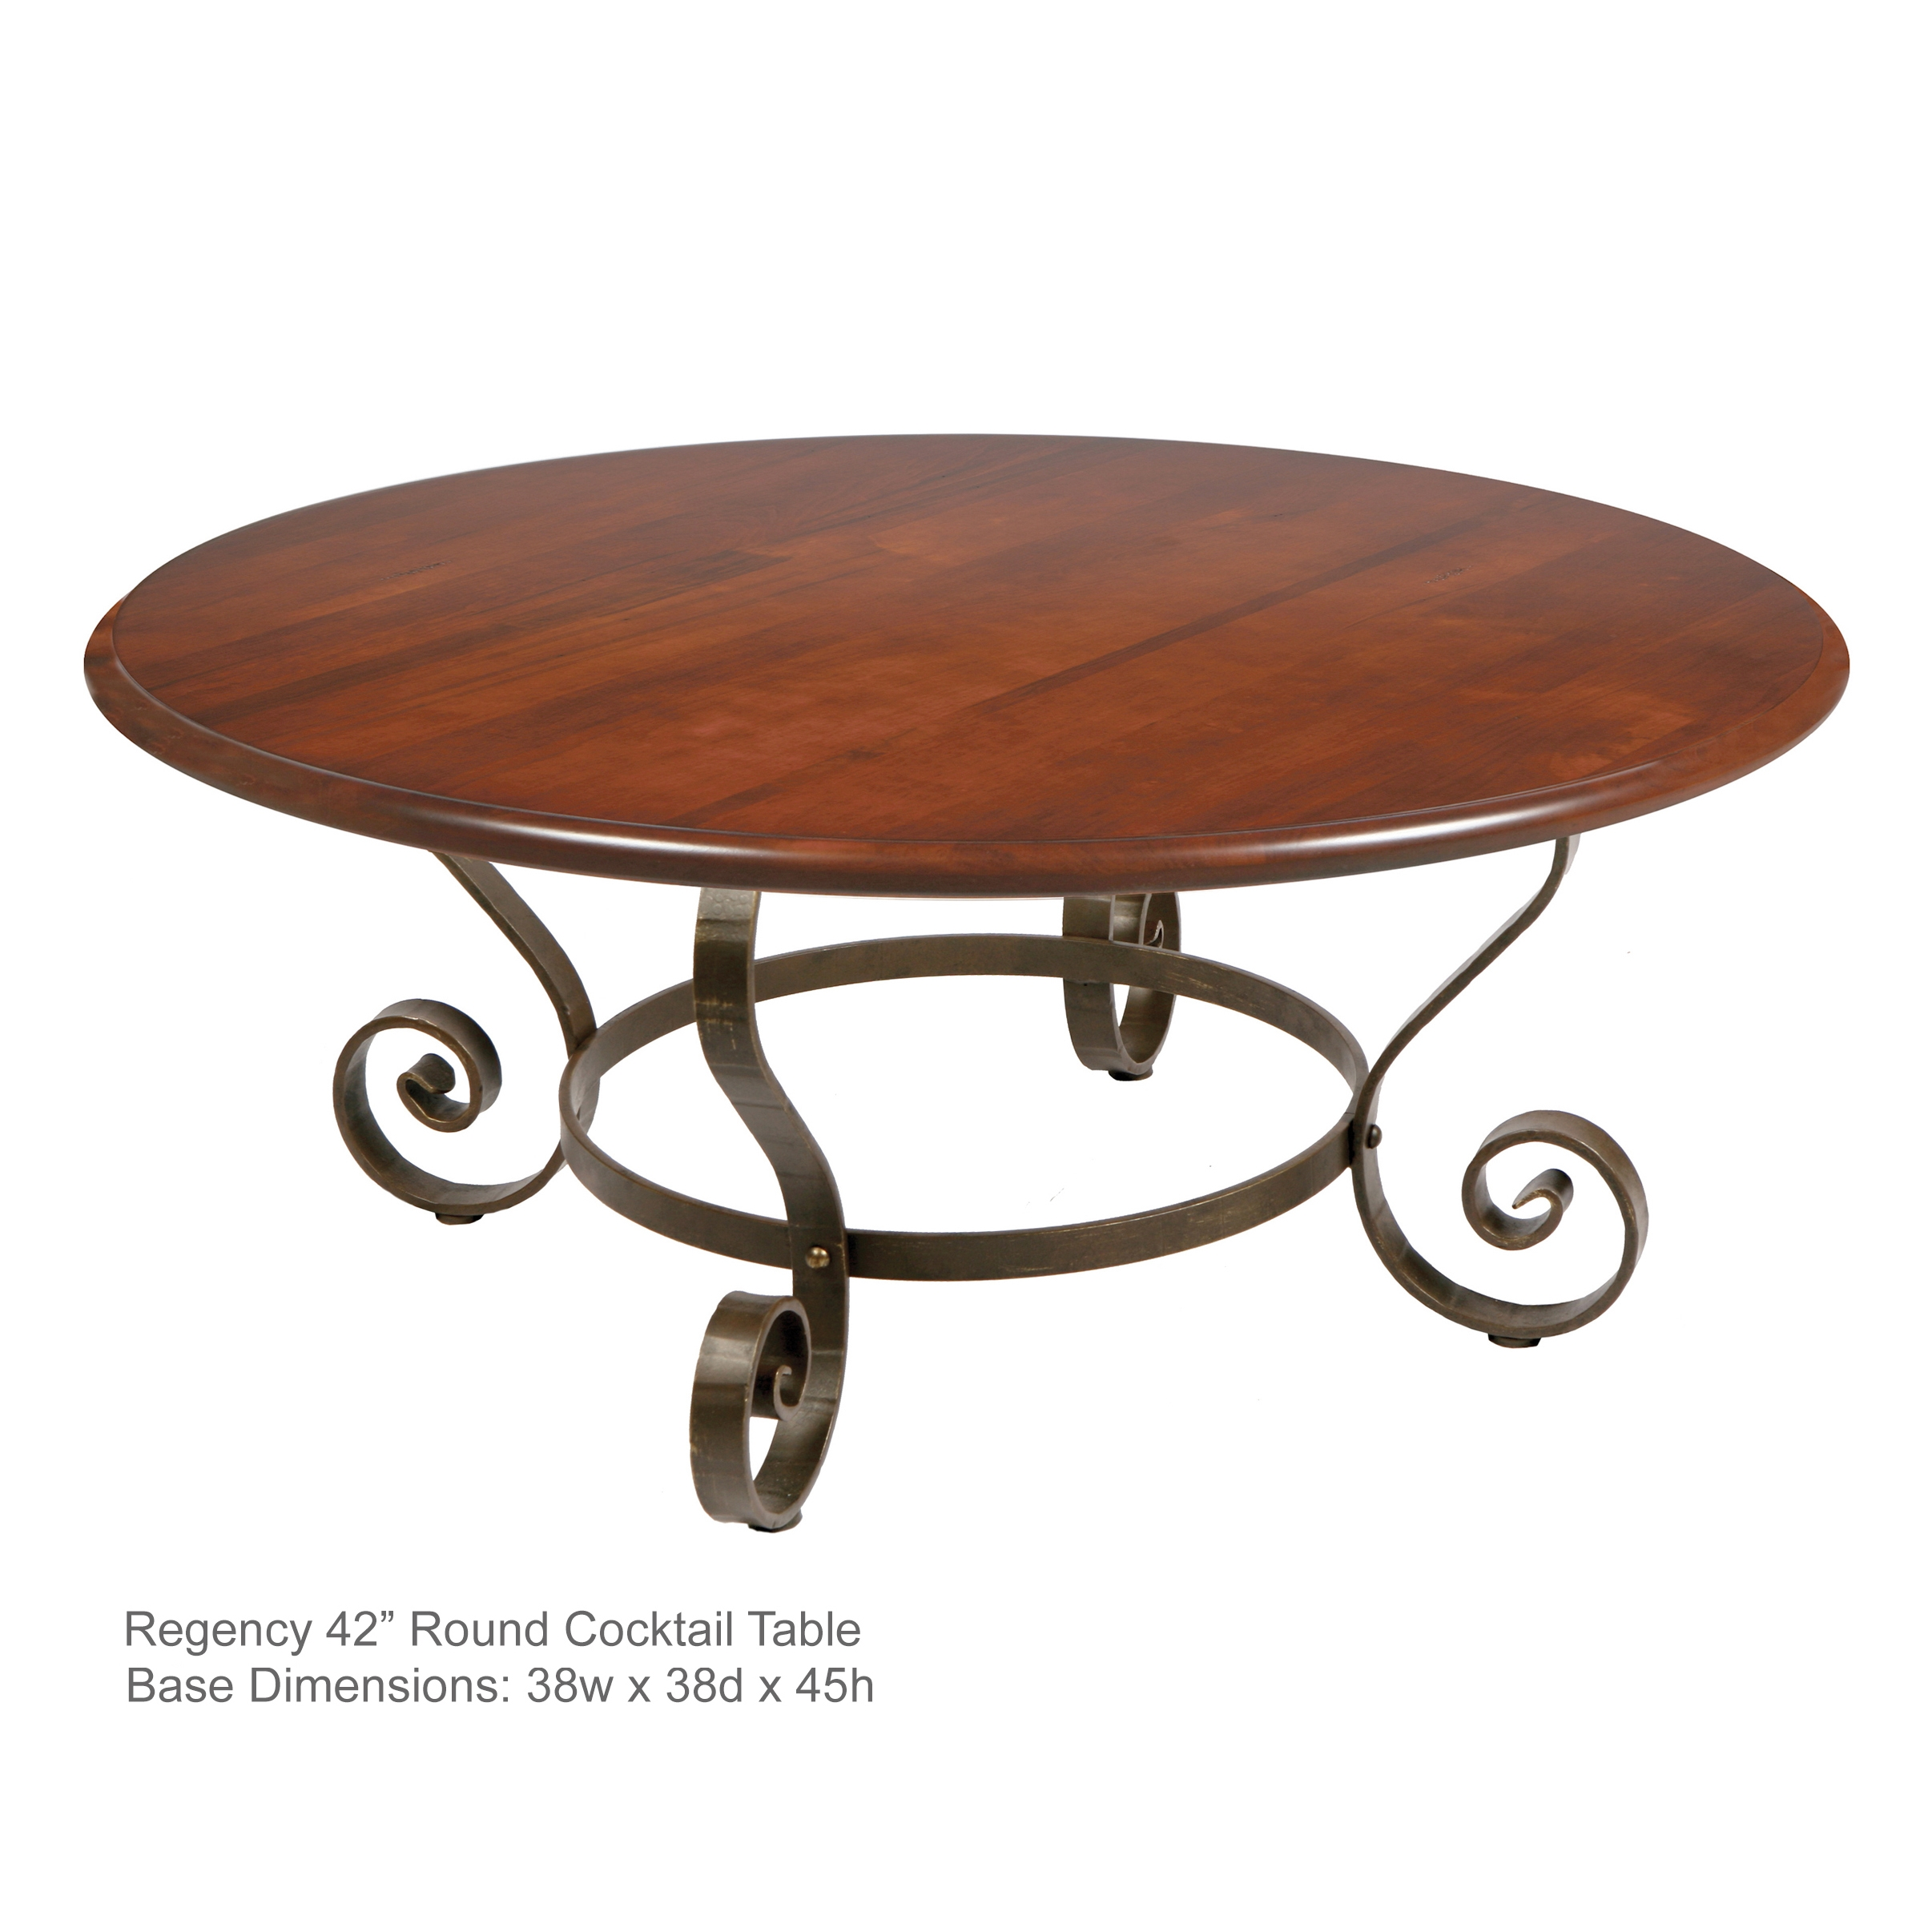 Regency 42 Round Cocktail Table